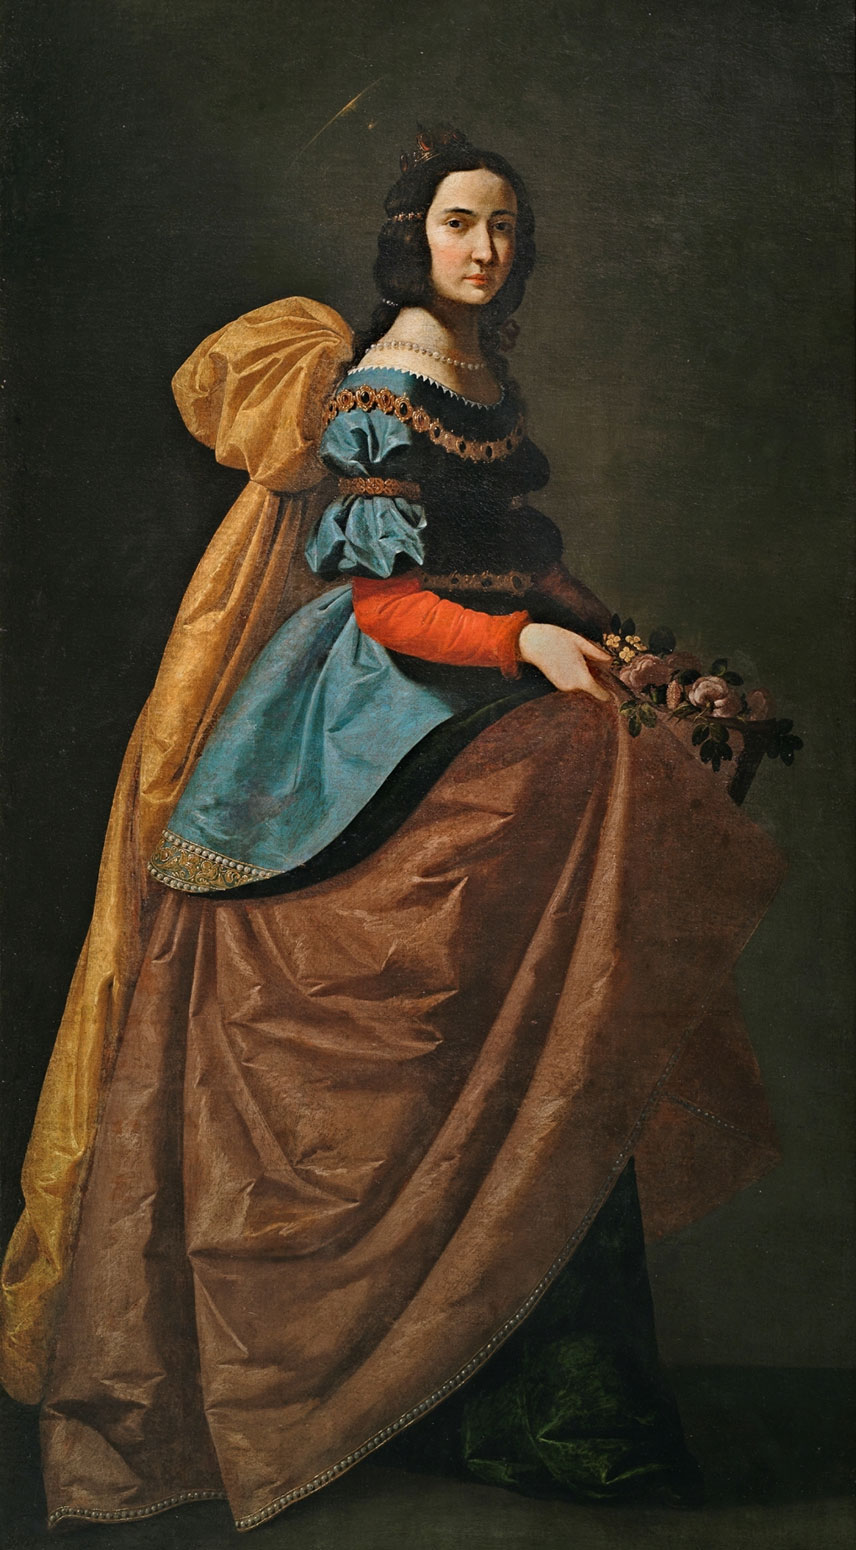 Zurbarán, Saint Isabel of Portugal